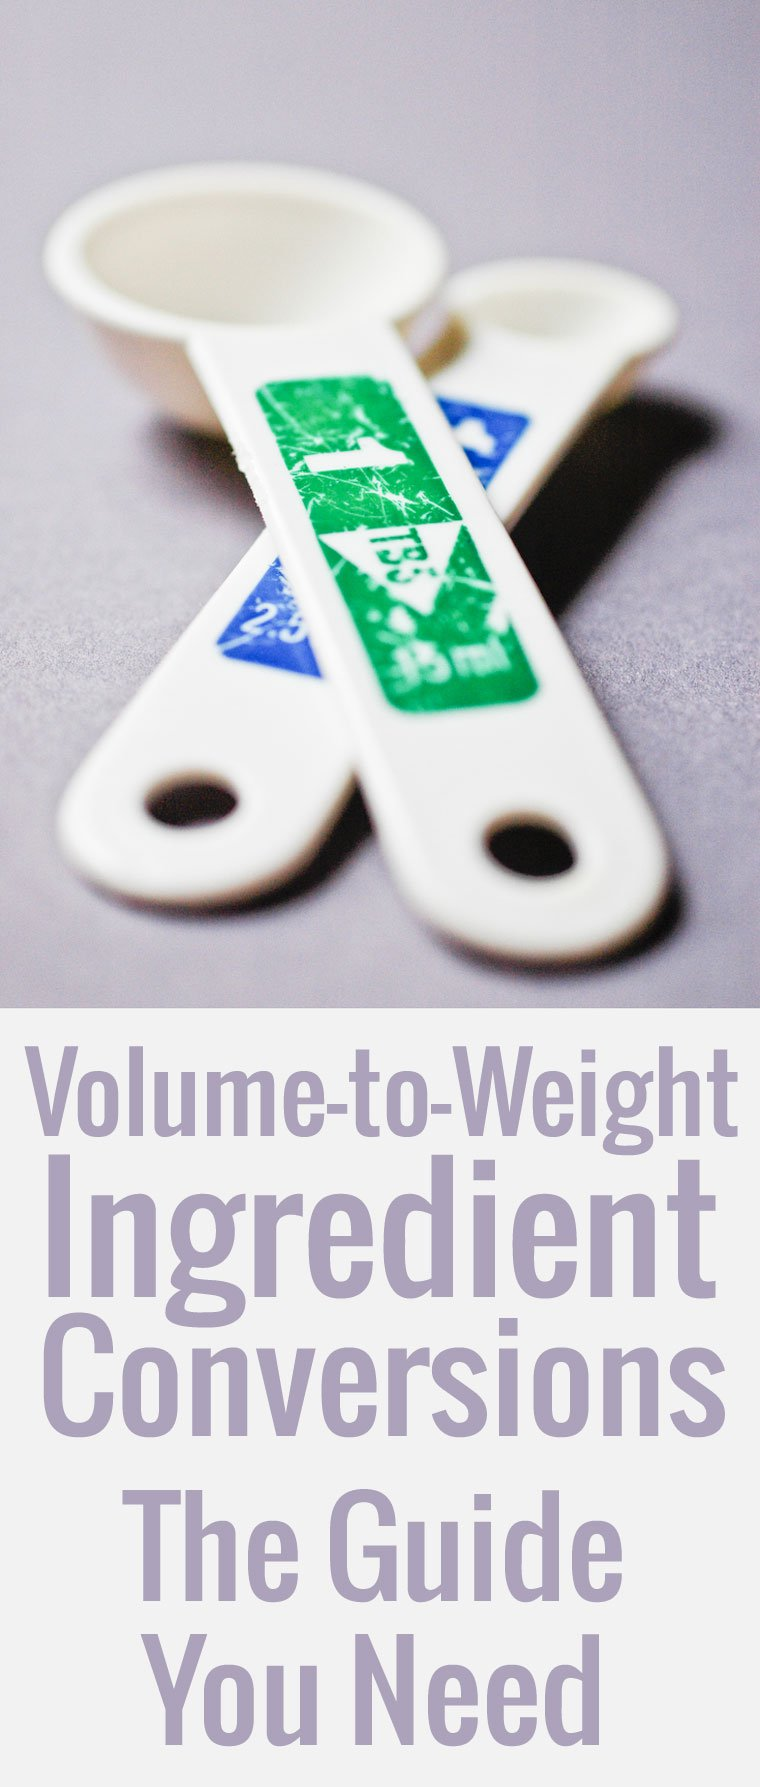 A handy guide to Volume-to-Weight Conversions, ingredient by ingredient, so you can use any recipe in the world using your preferred measurements.